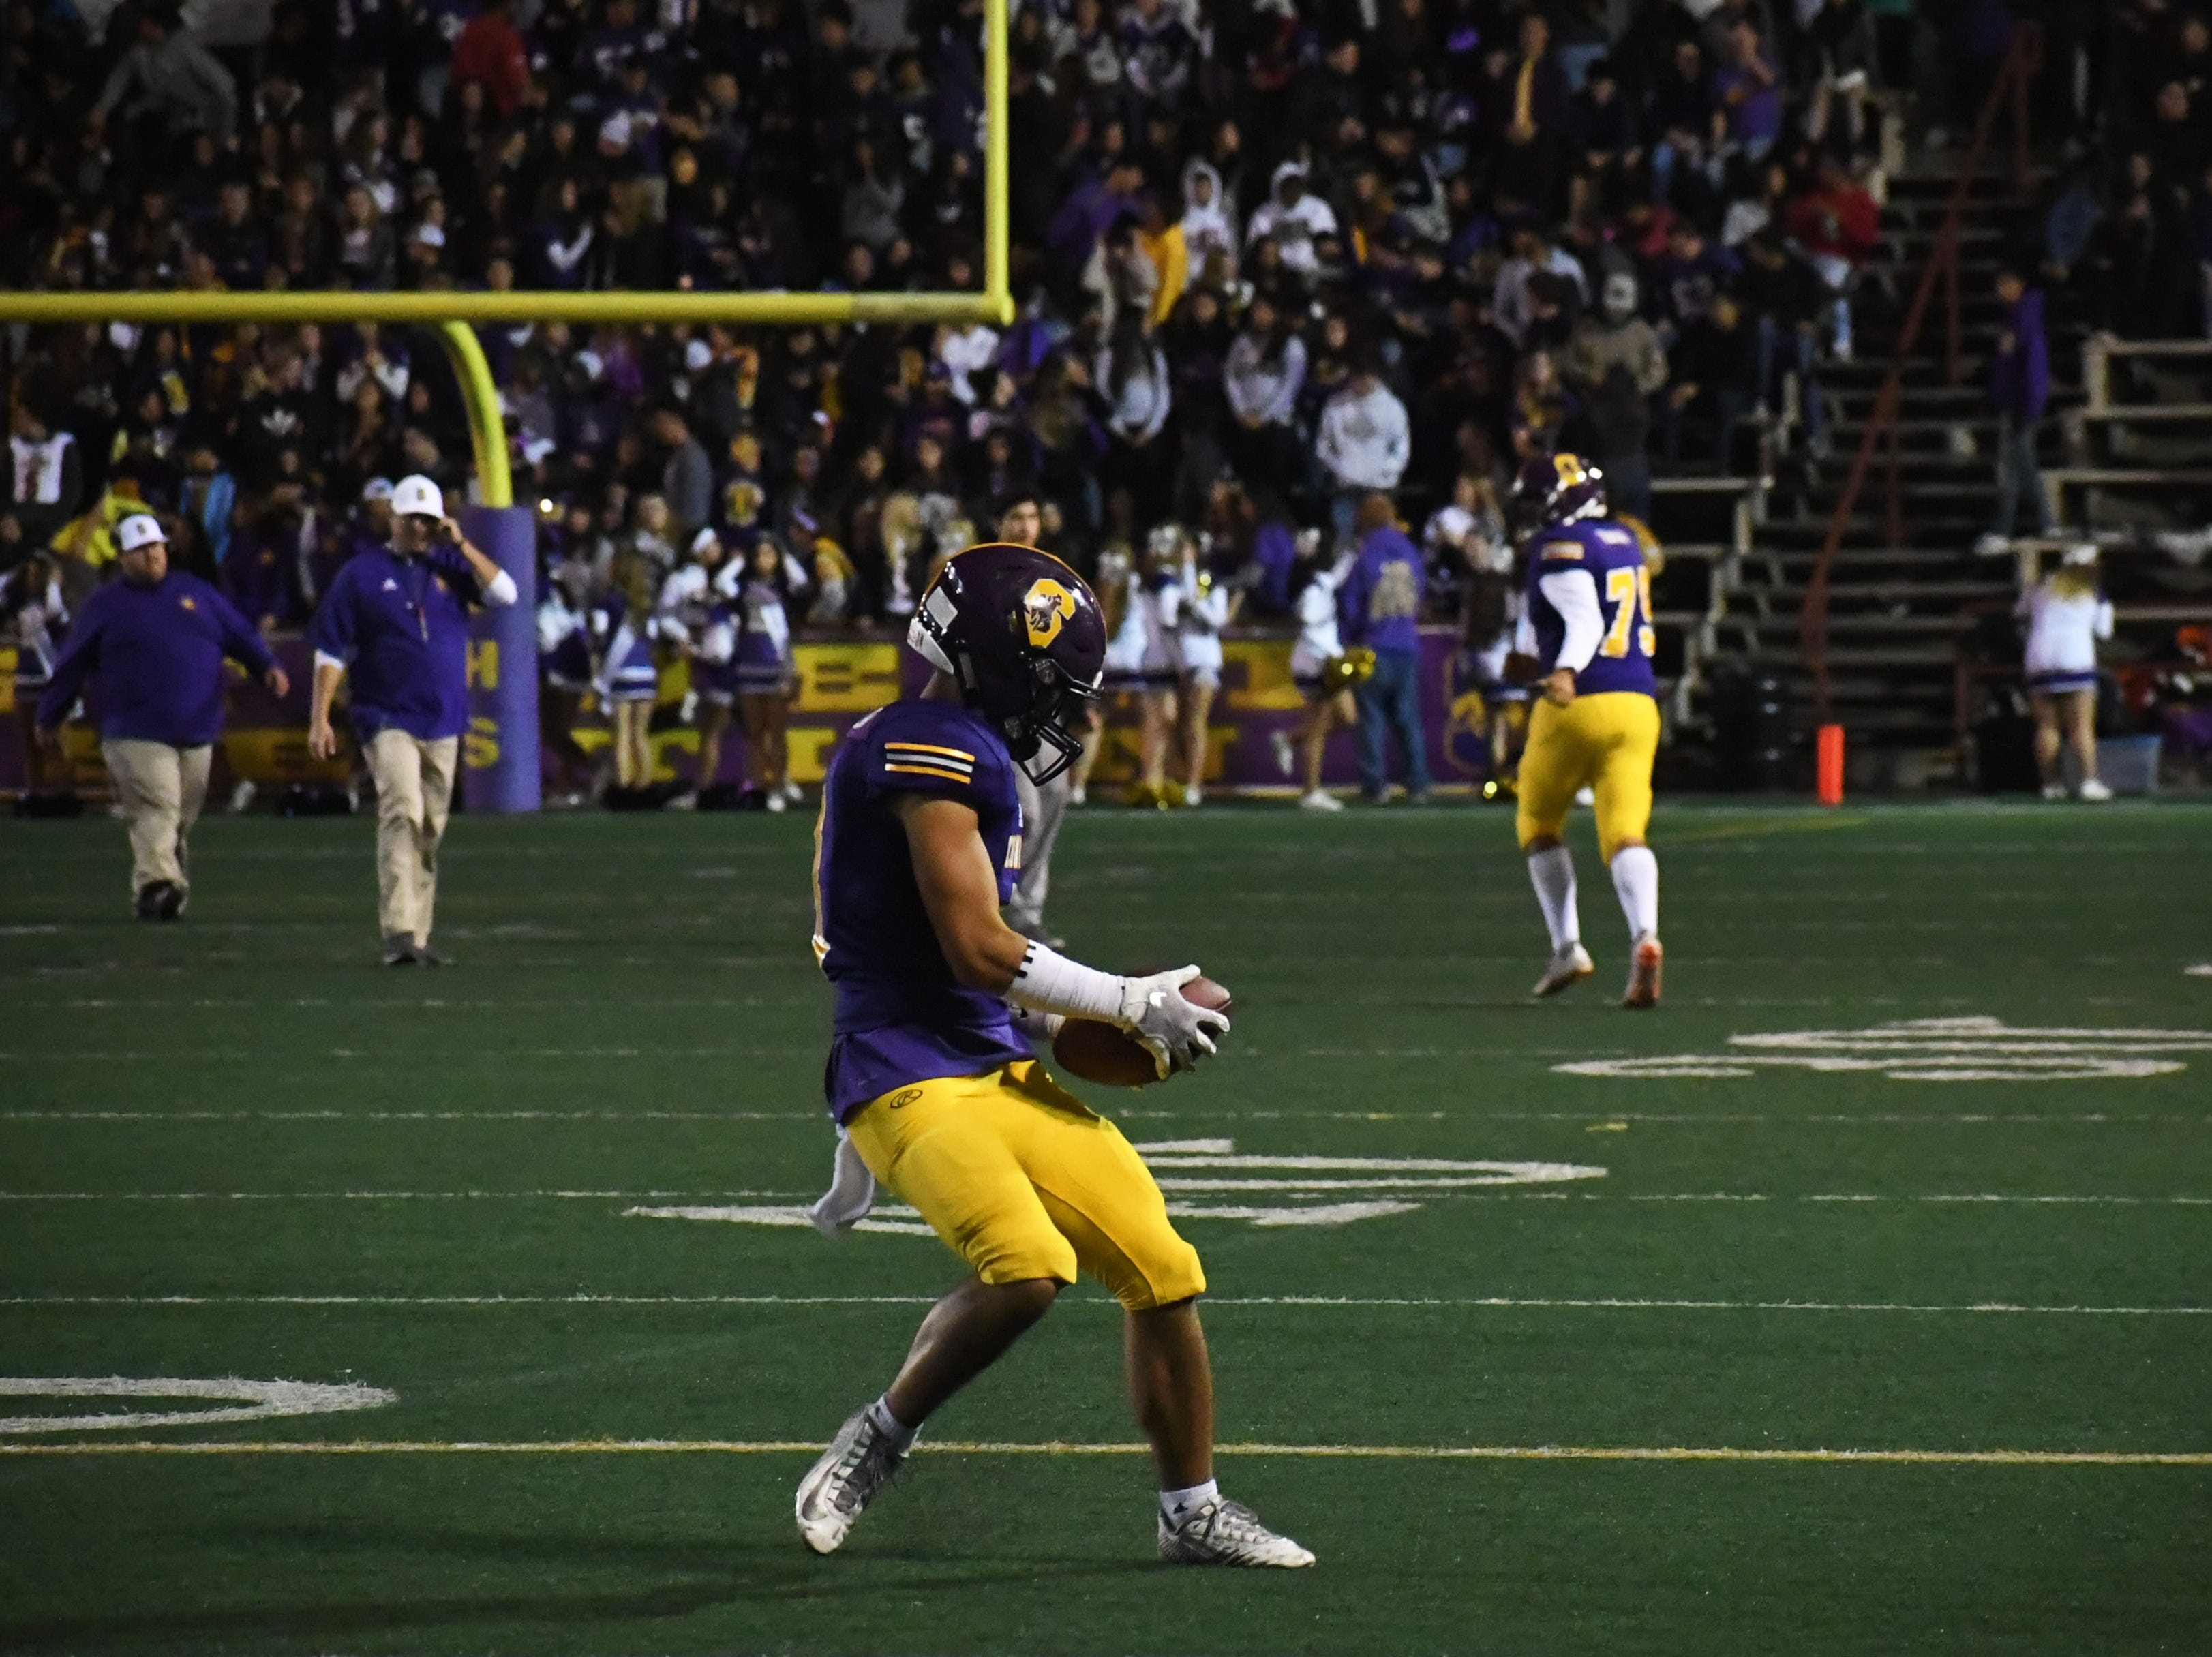 Salinas wide receiver Chad Fellom (6) catches a pass during halftime.